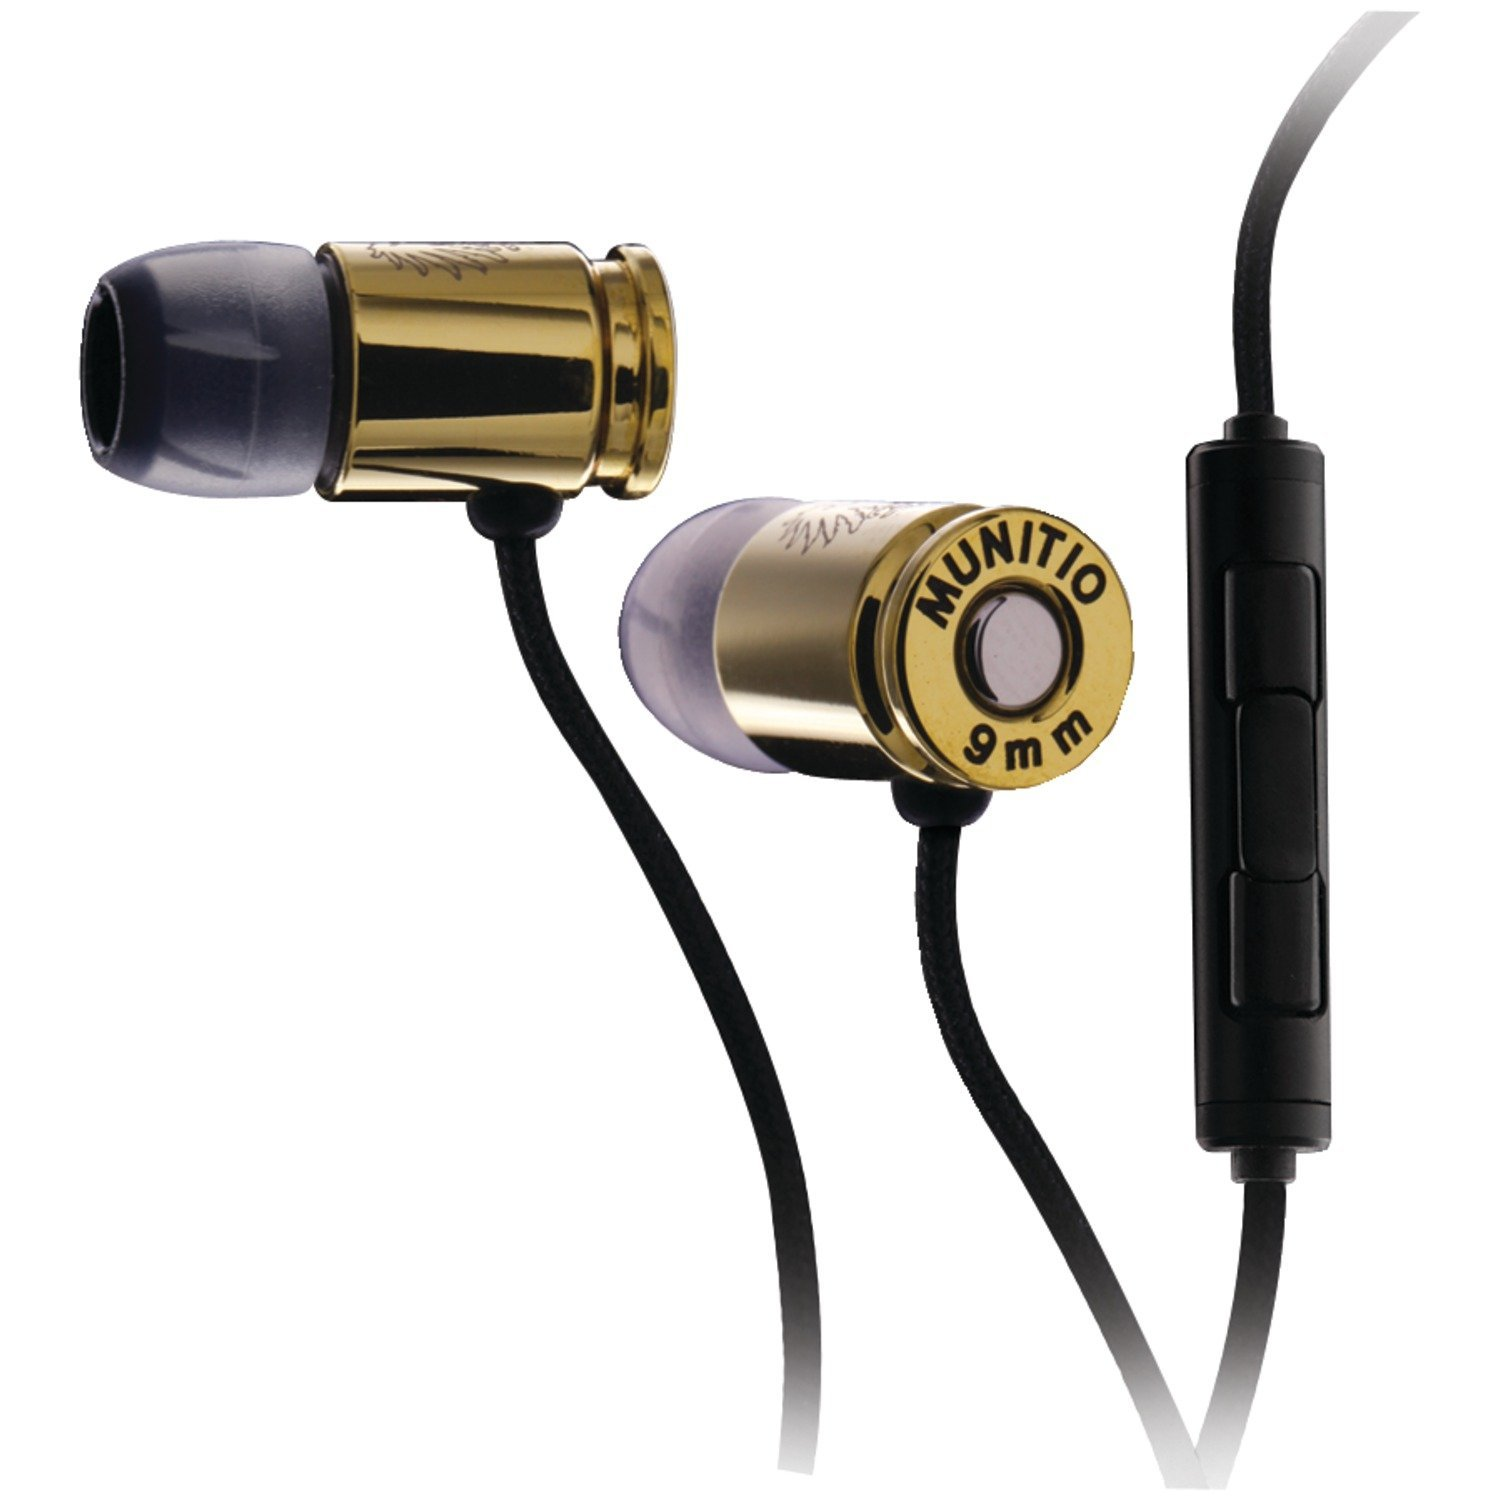 Amazon.com: Munitio NINES Tactical Earphones with 1 Button Universal Mic Control - Deep Gold: Electronics